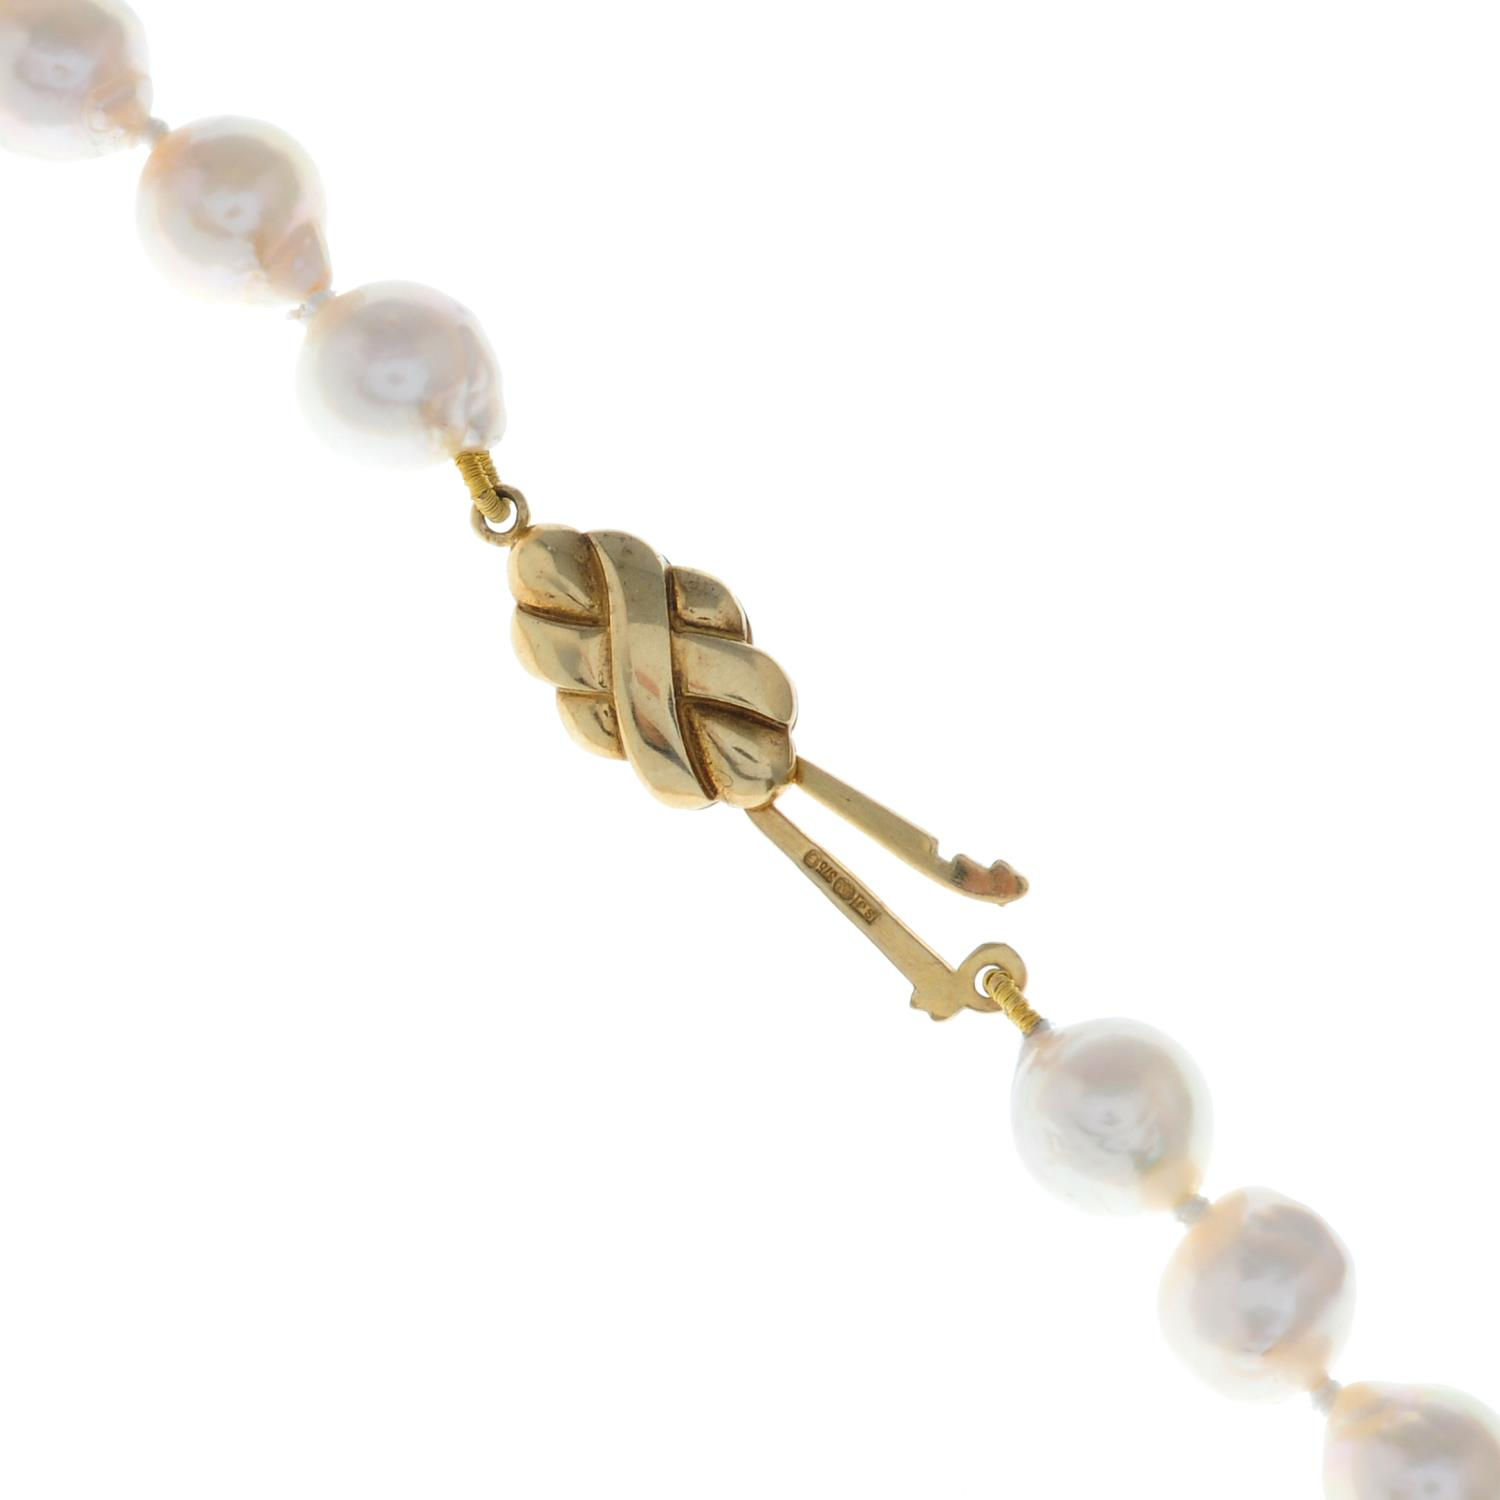 A cultured baroque pearl necklace, - Image 2 of 2